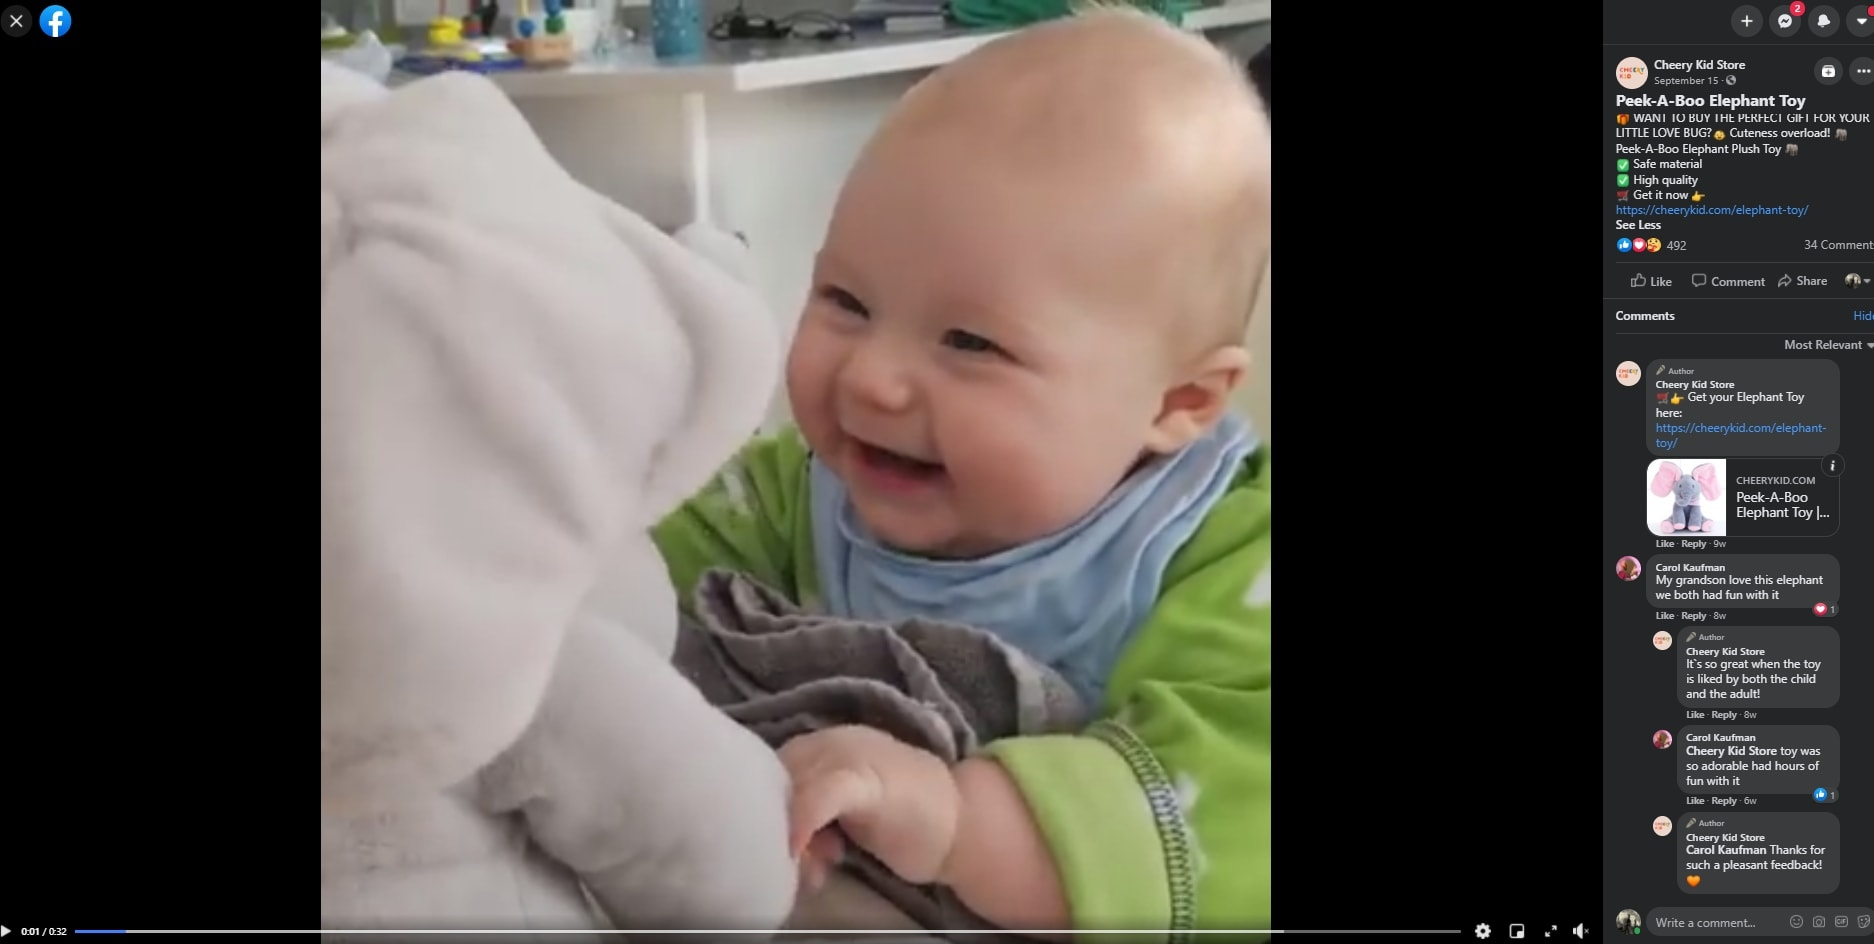 A video of a smiling baby used as a Facebook ad